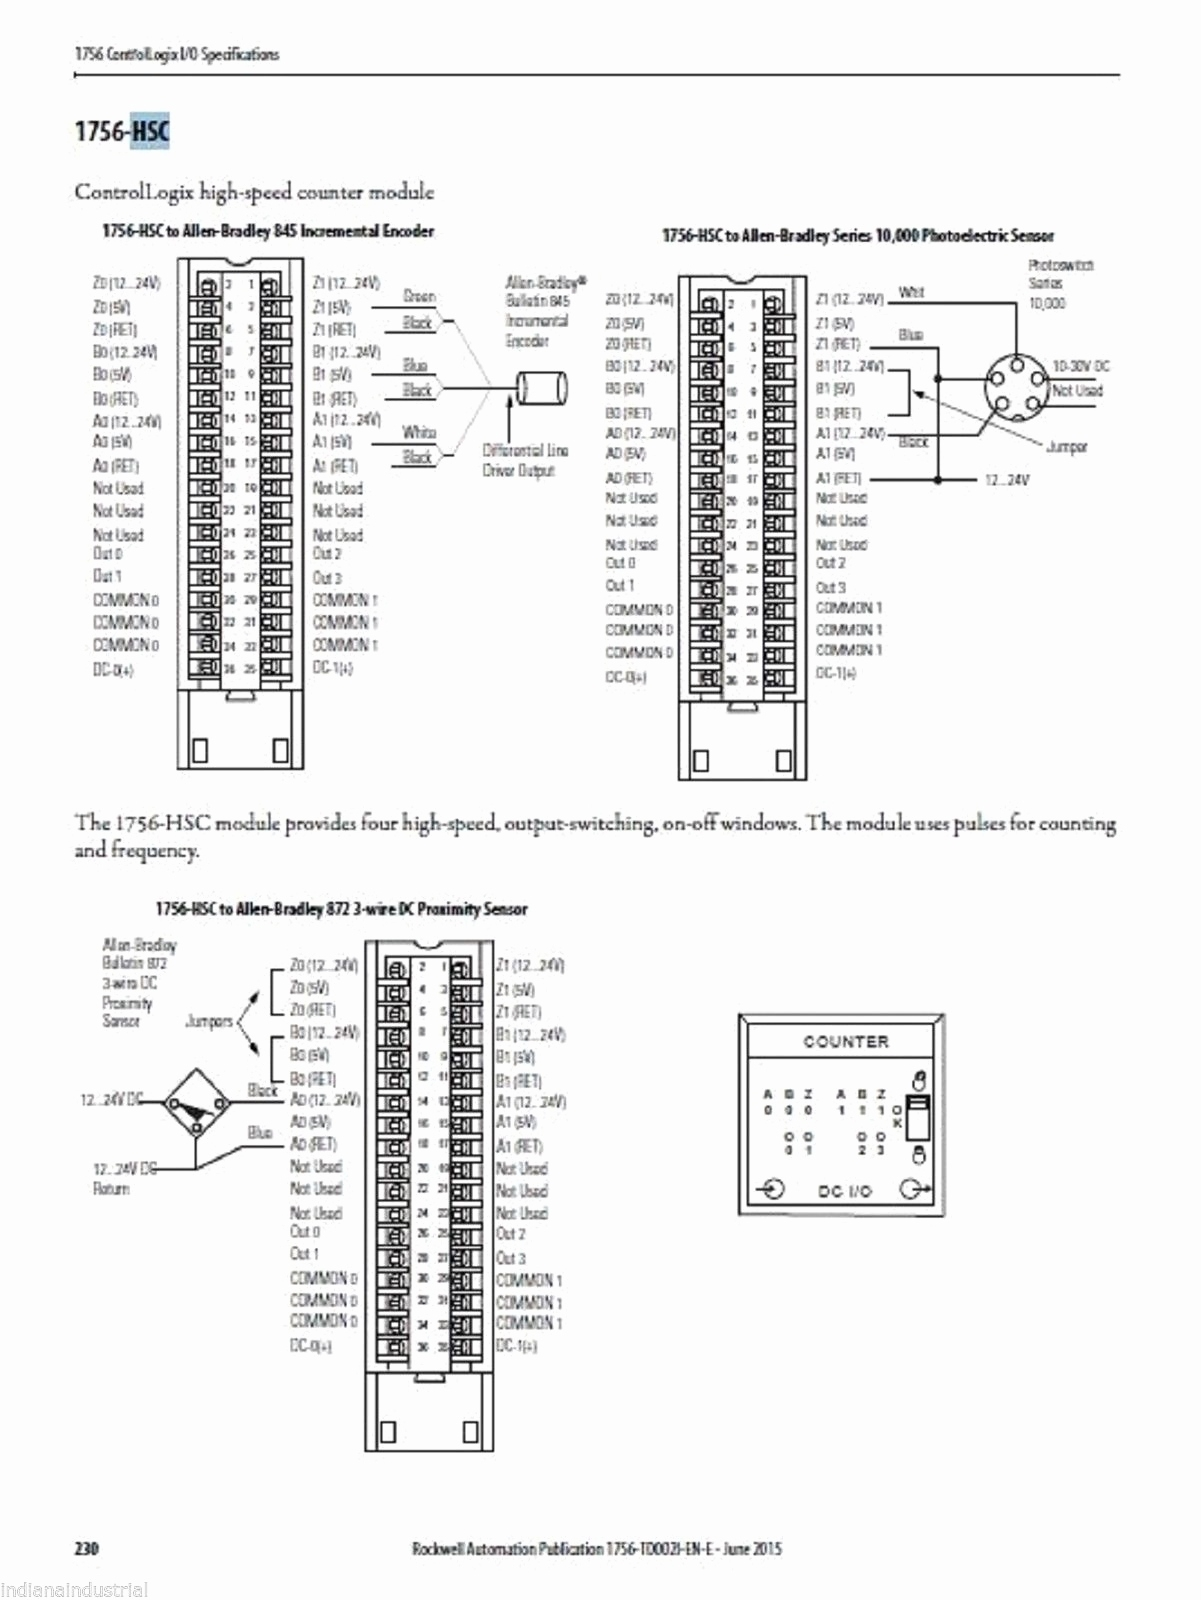 allen bradley 1756 of8 wiring diagram Collection-Allen Bradley 1756 8 Wiring Diagram Full Size Wiring Diagram 1756 if6i Wiring Diagram 11-o